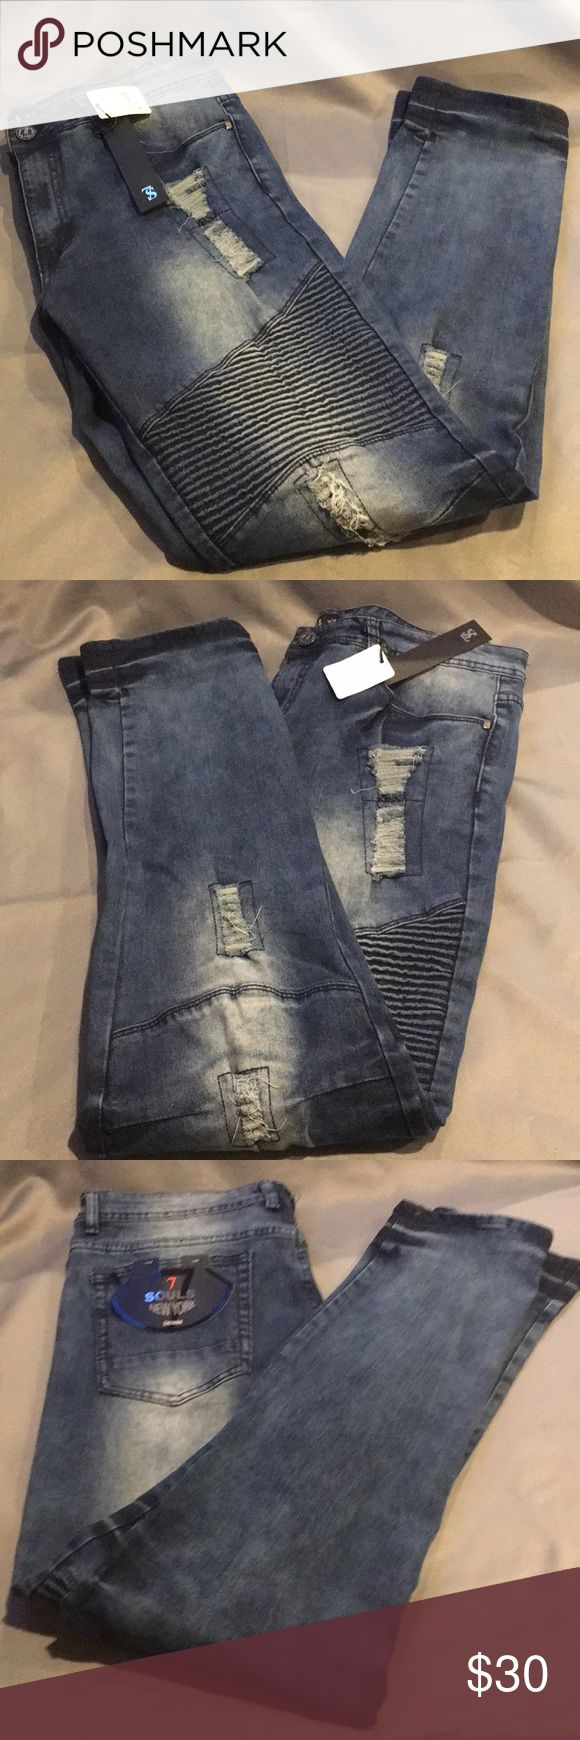 NWT 7 Souls Dark Blue Jeans NWT 7 Souls Dark Blue Jeans. Size 34/34. 5 pockets. They have the torn and stitched look. Checkout my other listings and add to a bundle to save! 7 Souls Jeans Straight